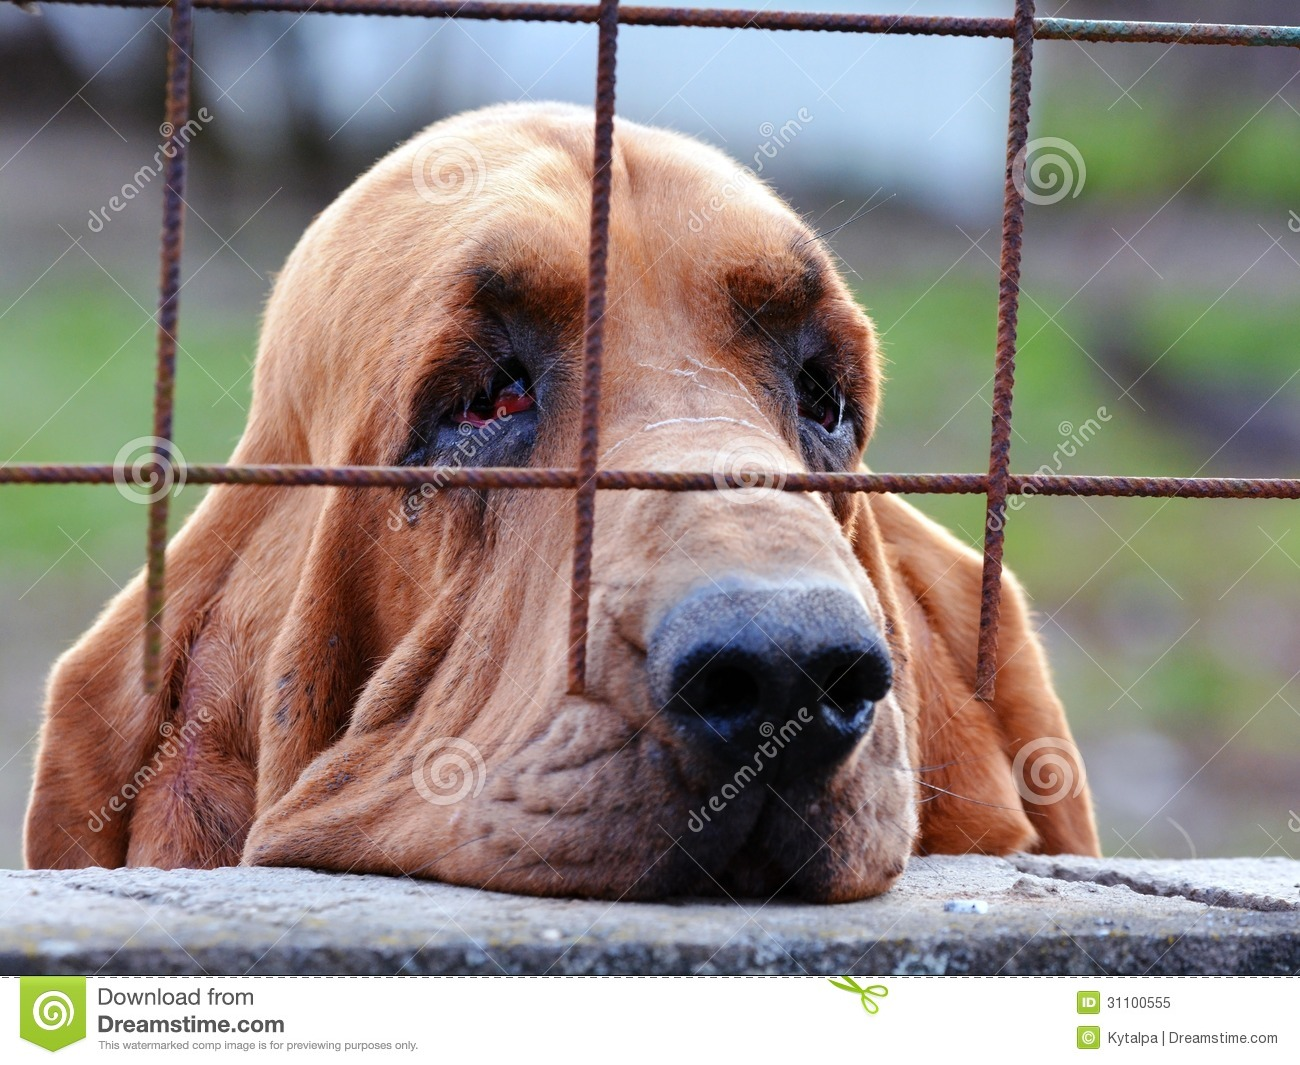 Sad Looking Dog Breed